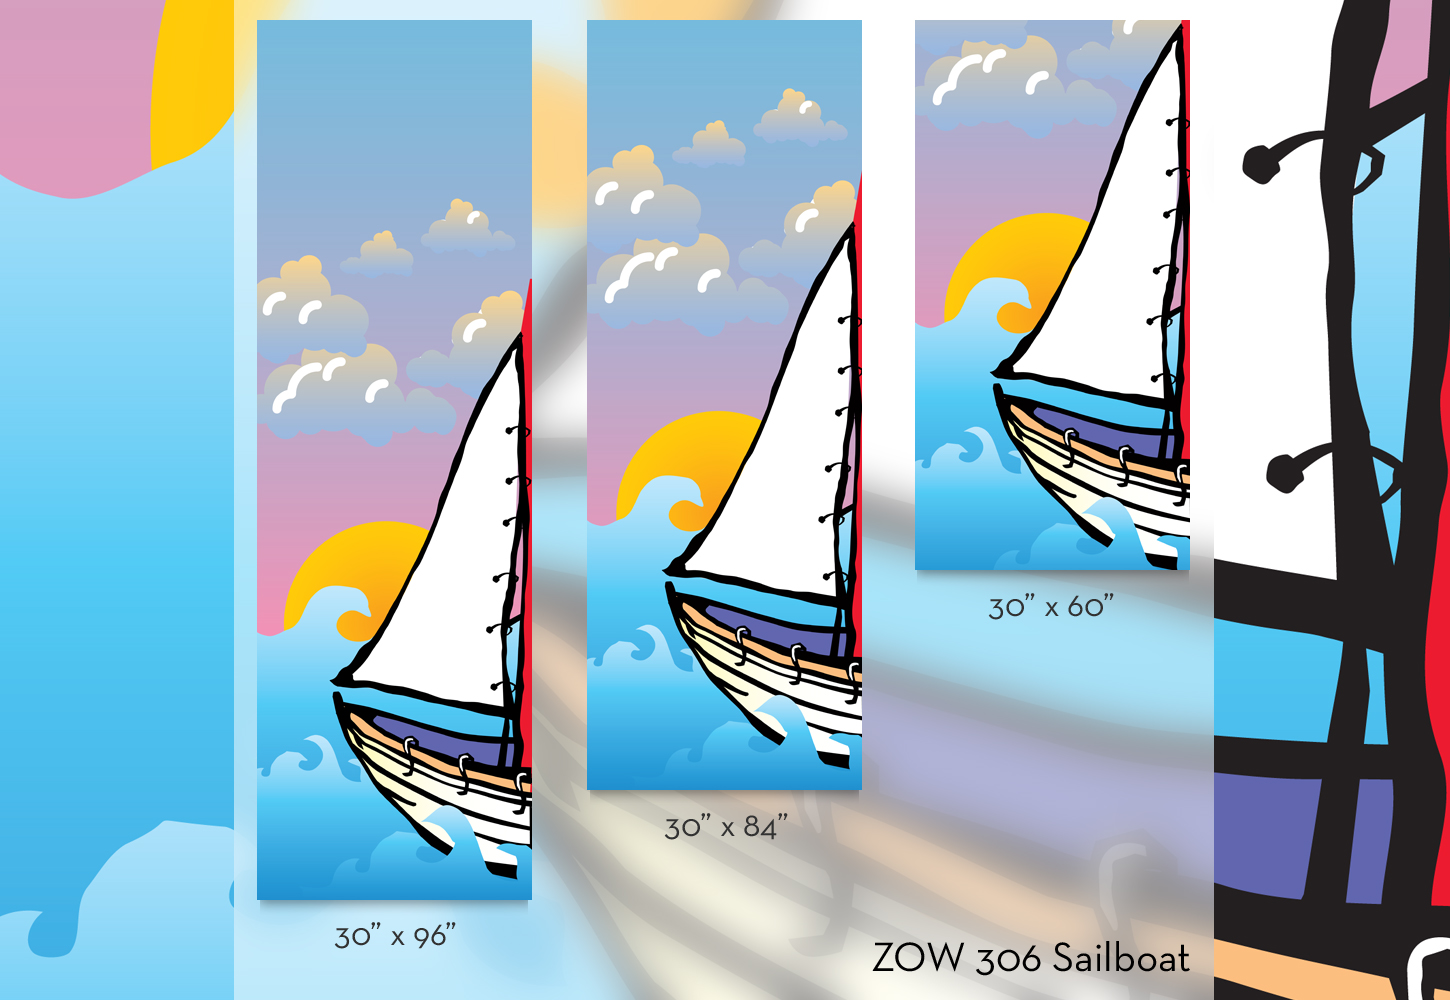 ZOW 306 Sailboat